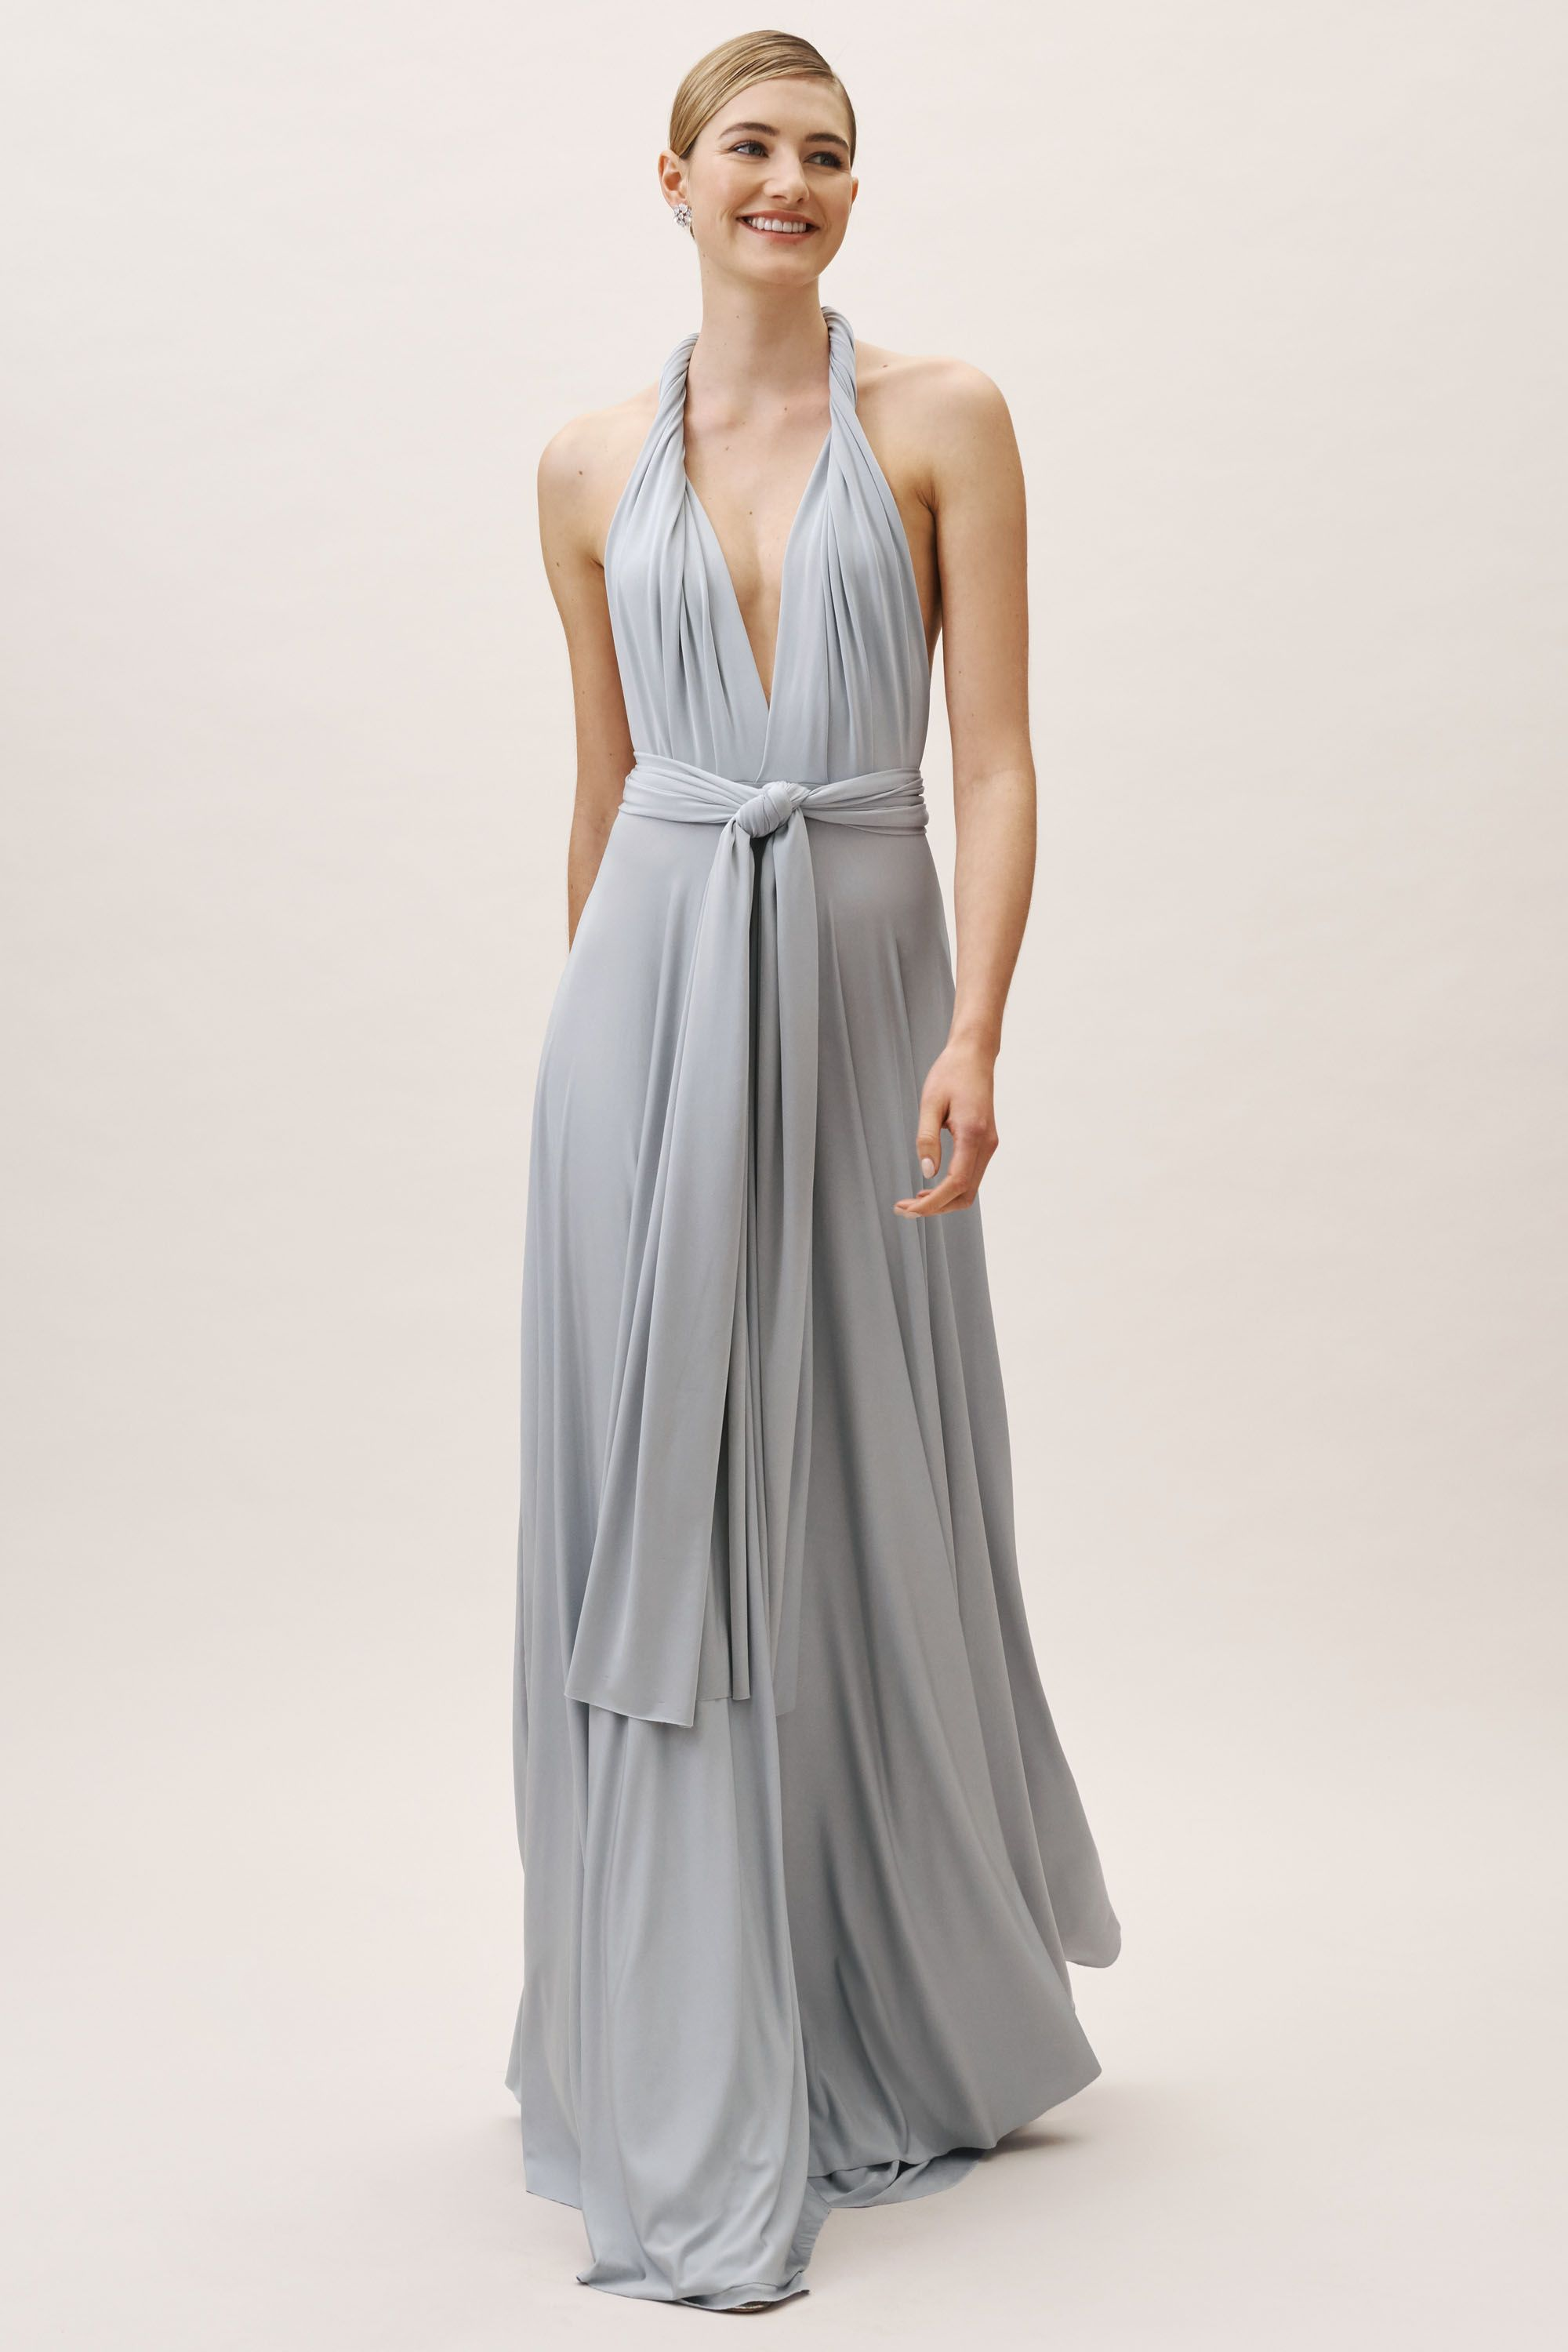 c984c4106c4 BHLDN's twobirds Ginger Convertible Maxi Dress in Fog